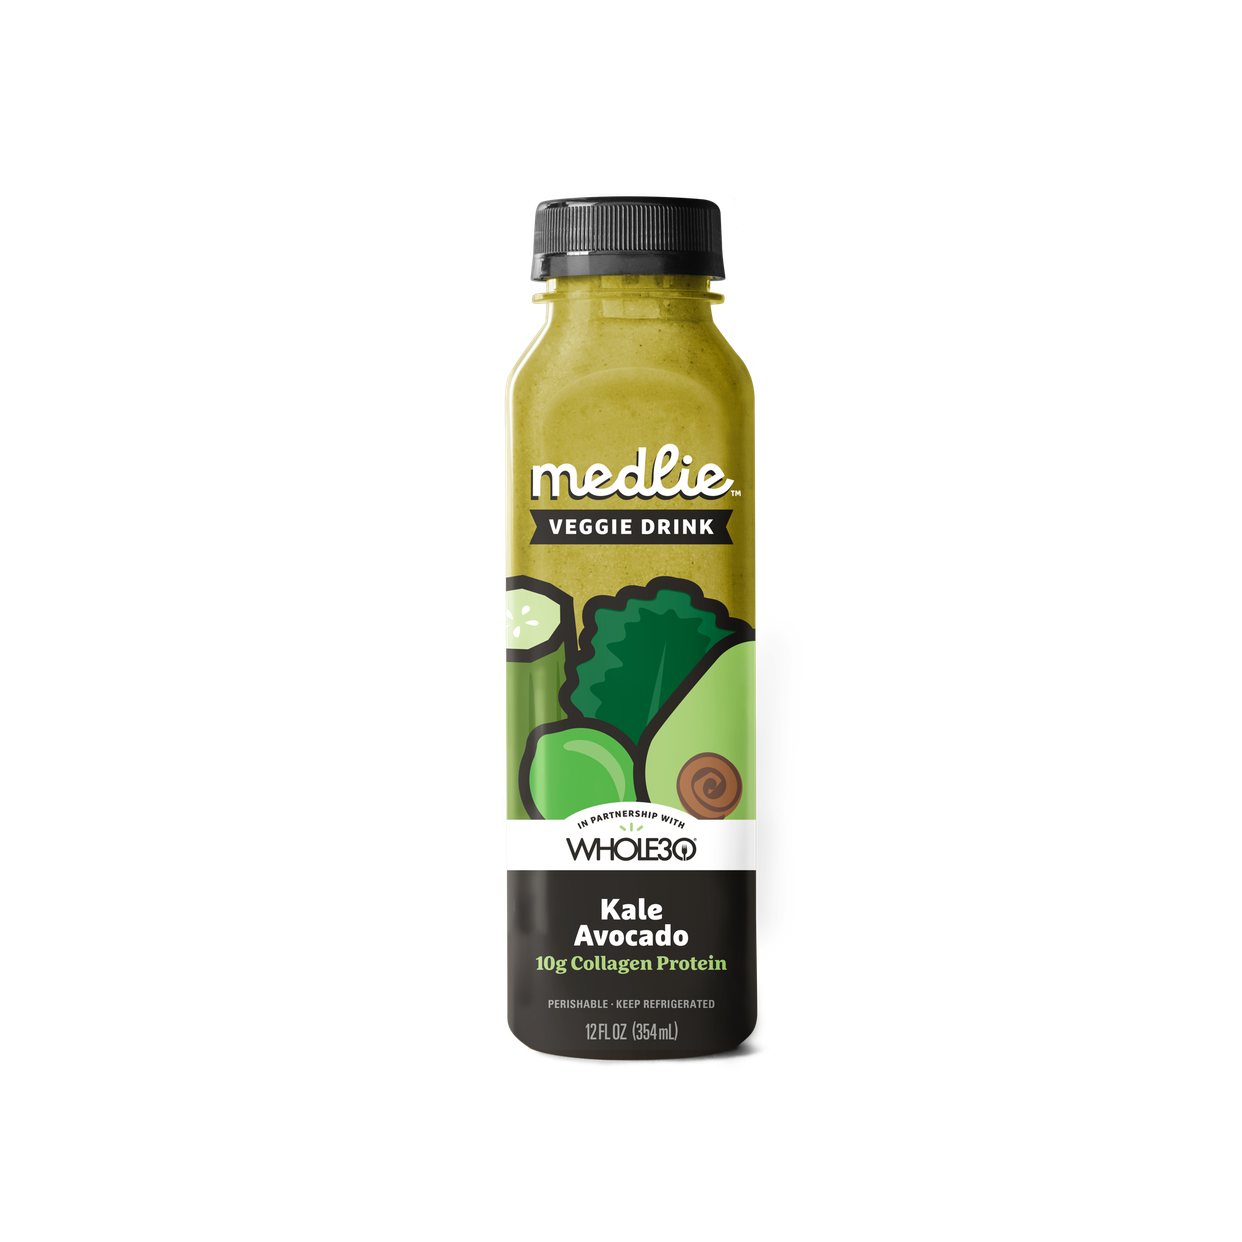 medlie veggie drink - kale avocado collagen